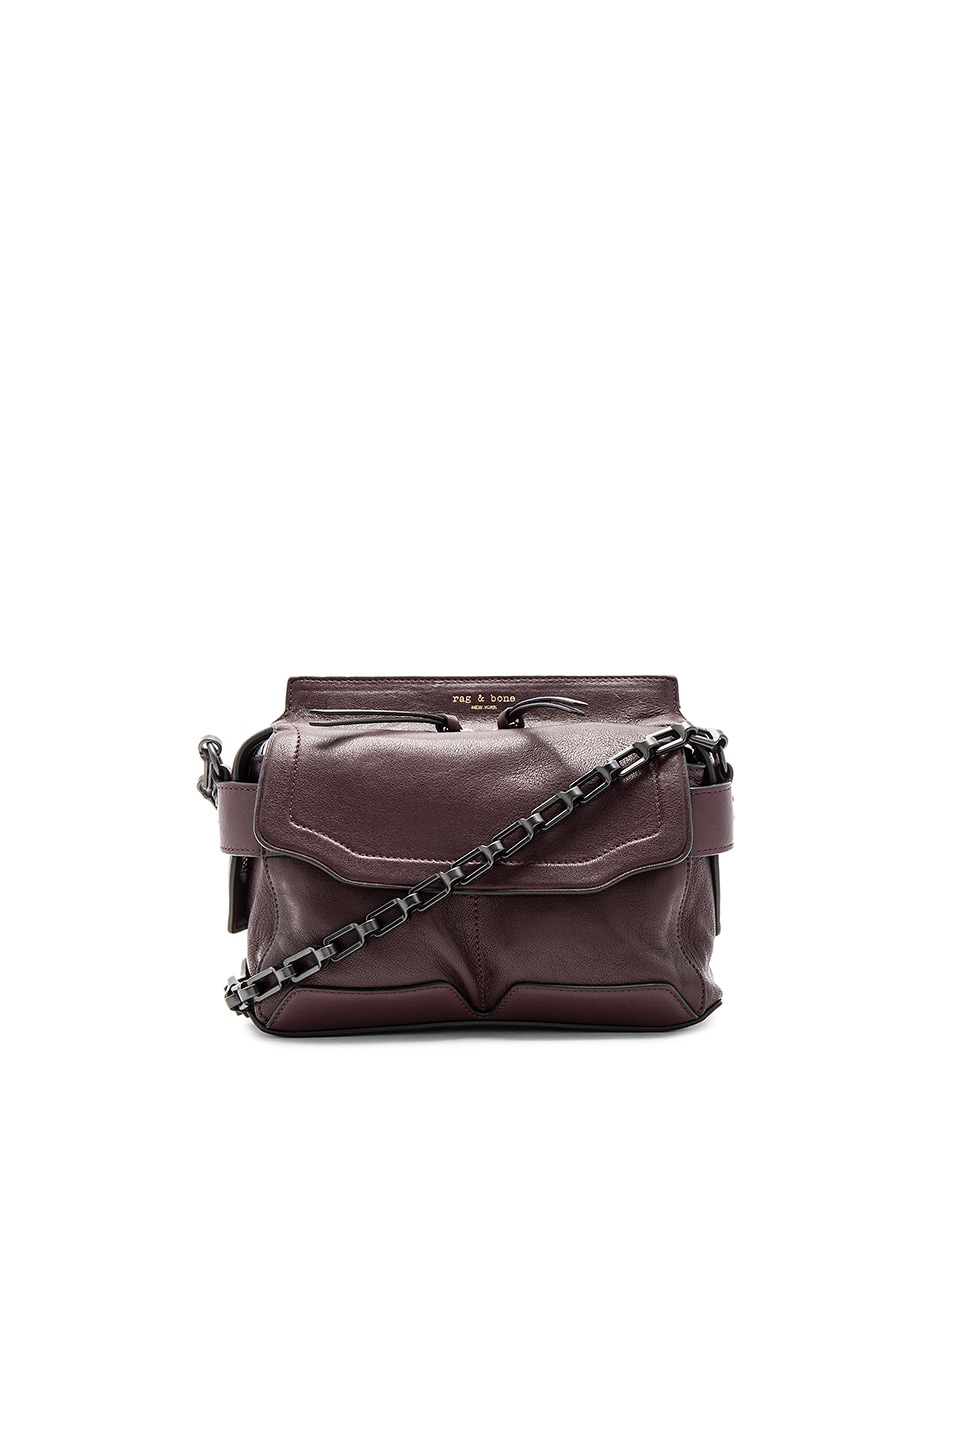 Rag & Bone Micro Pilot Satchel in Bordeaux